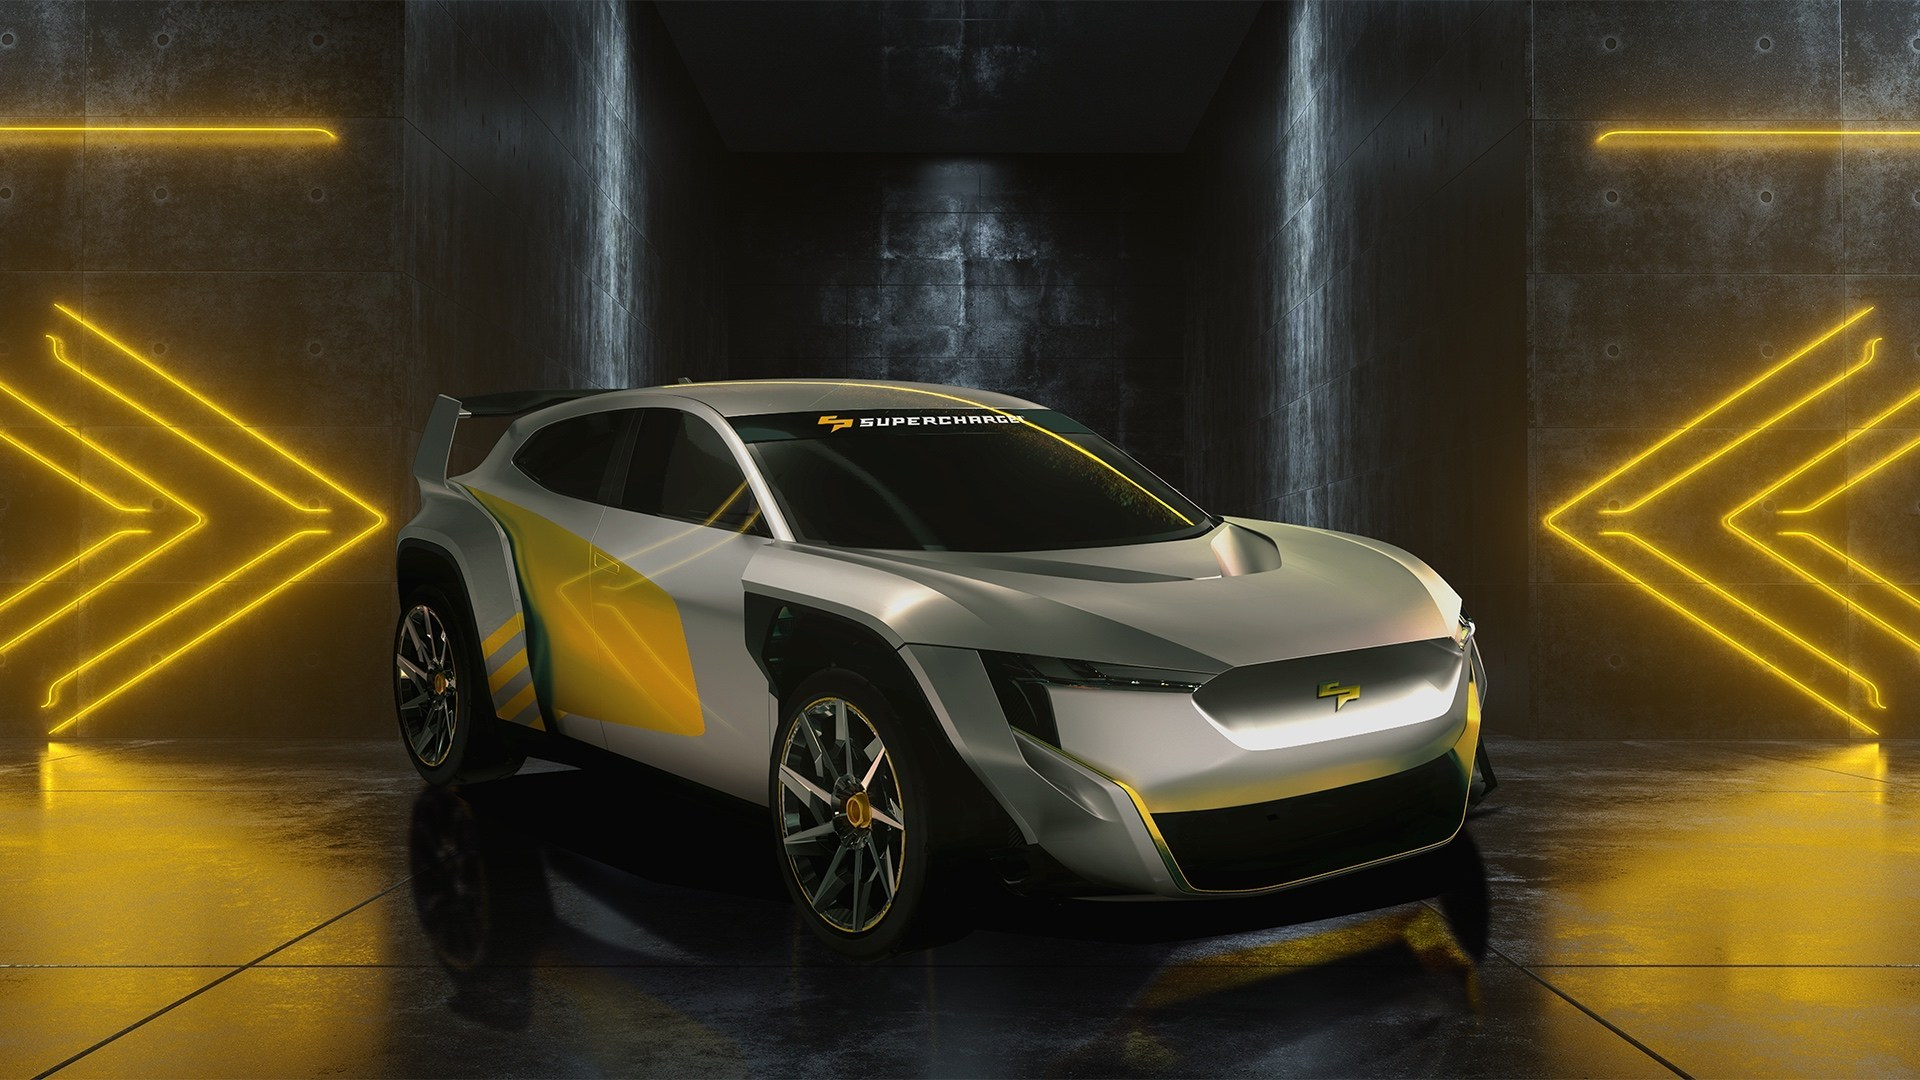 SuperCharge - new road-car based global electric motorsport series unveiled